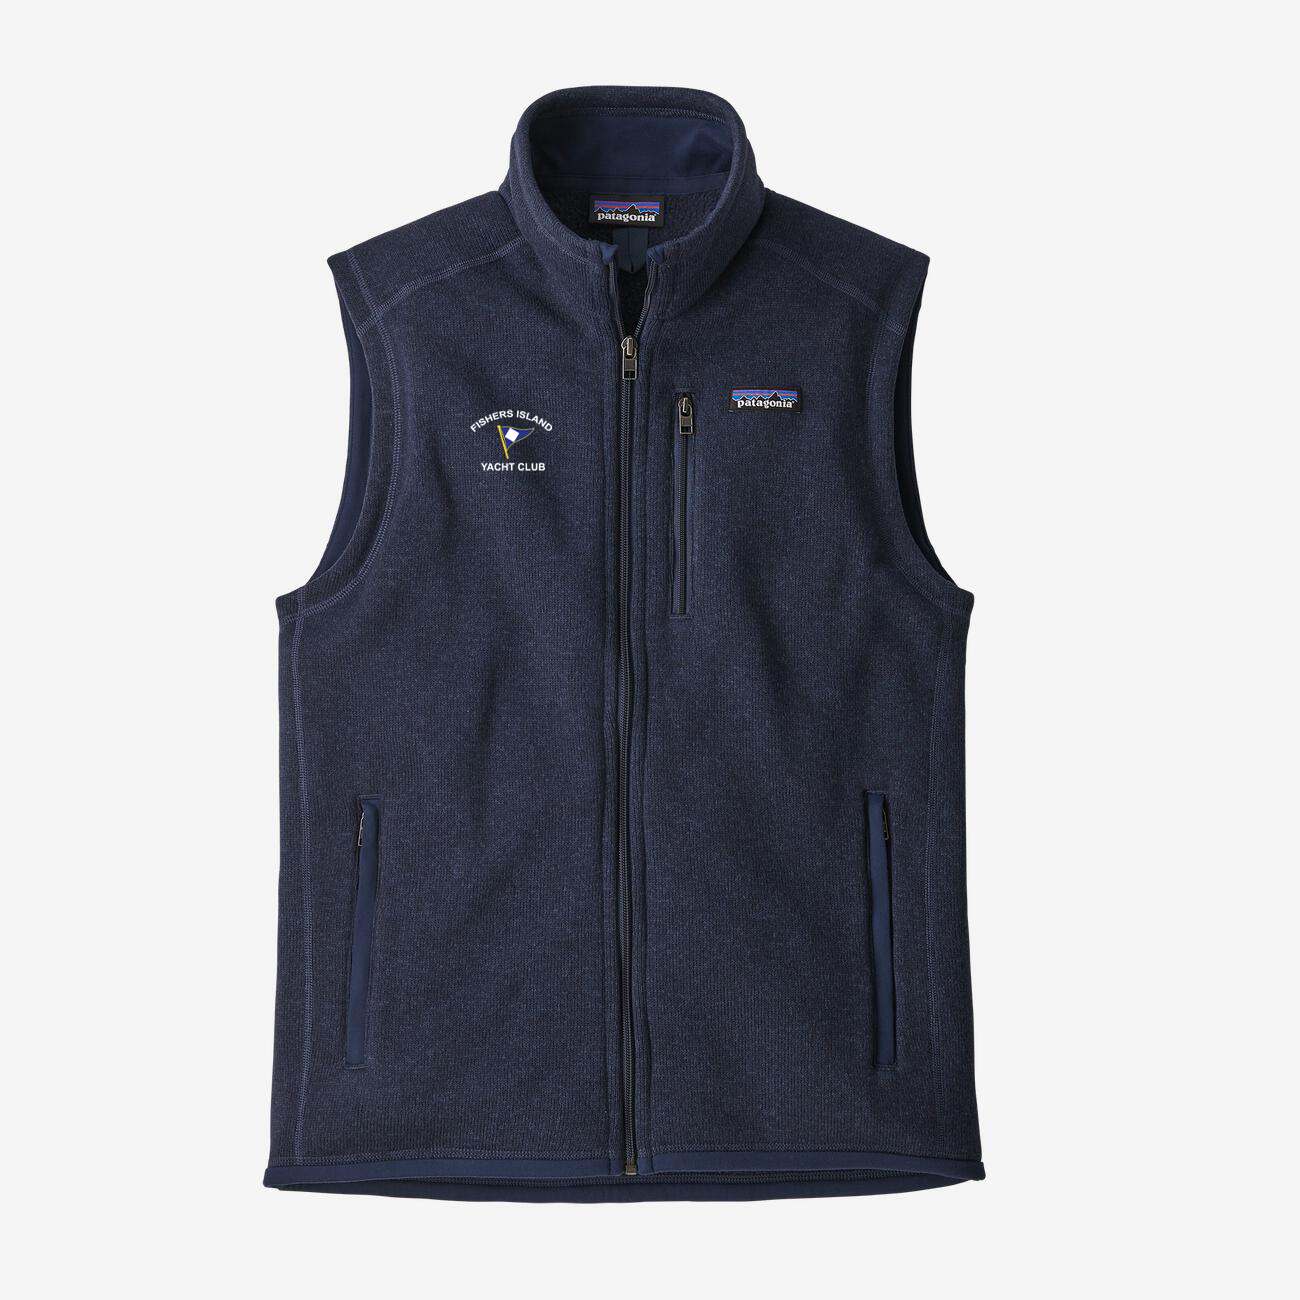 Fishers Island Yacht Club - Men's Patagonia Better Sweater Vest